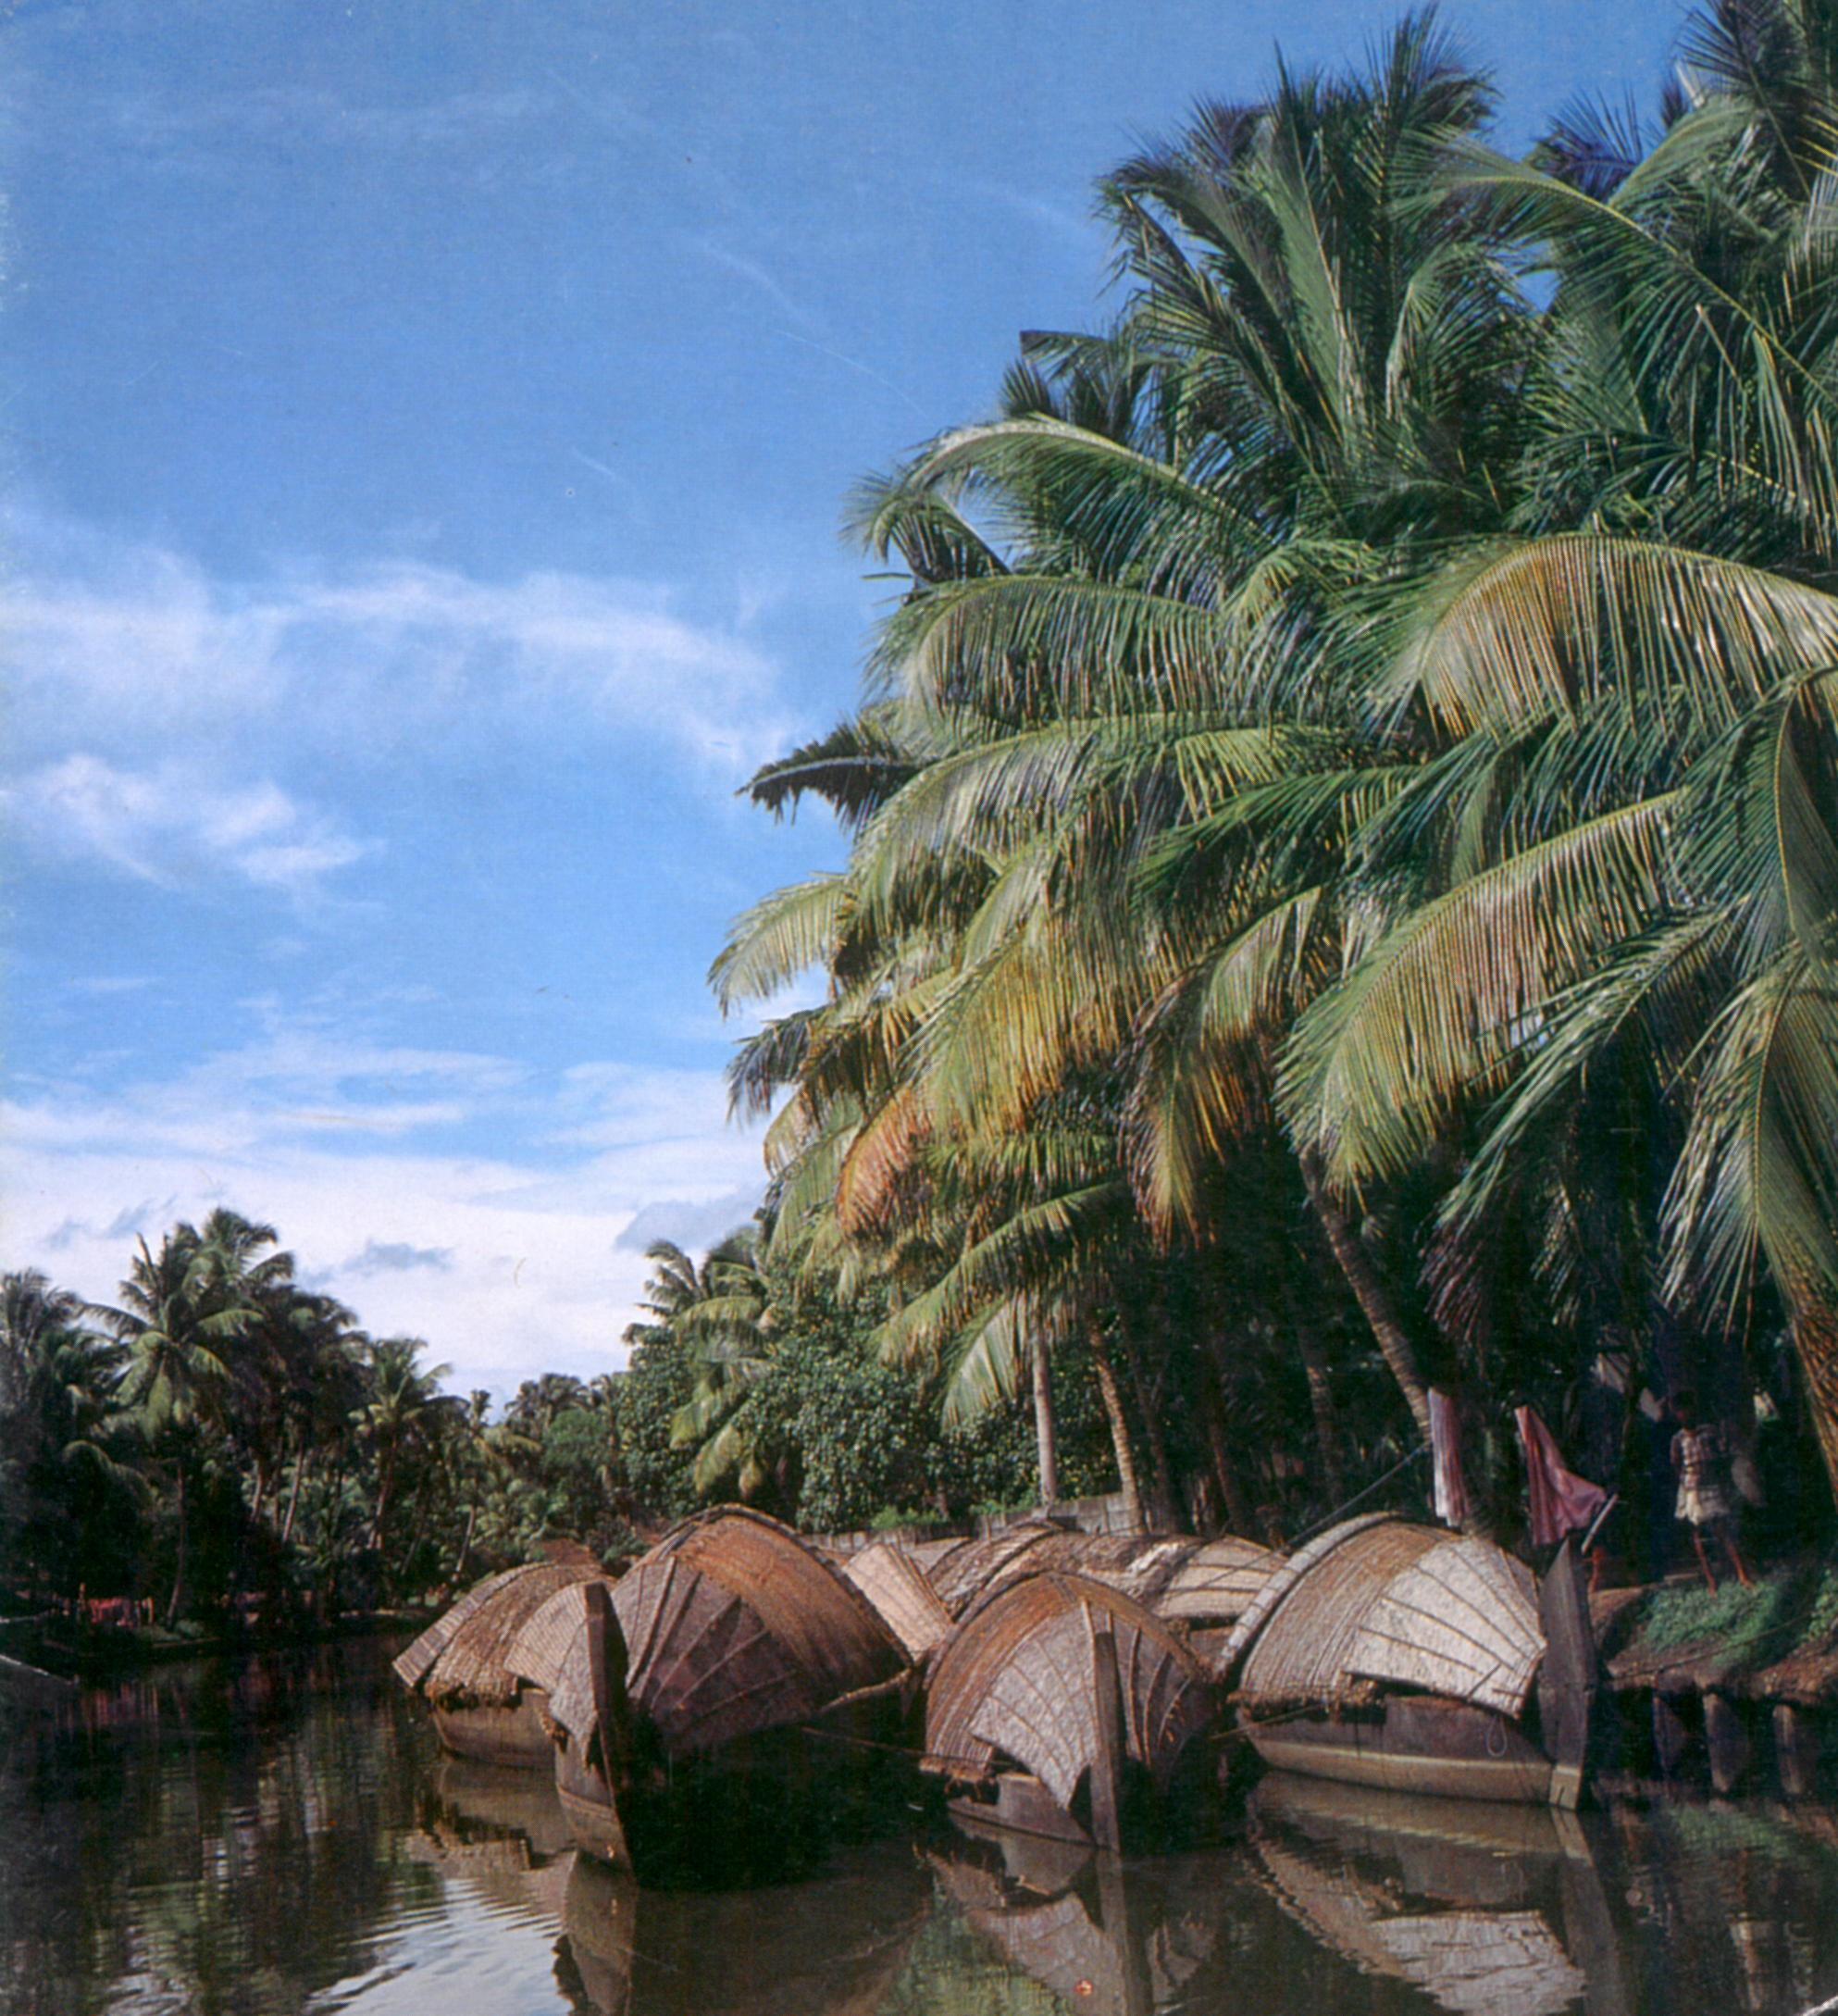 http://www.hipoints.com/Images/kerala-backwaters.jpg